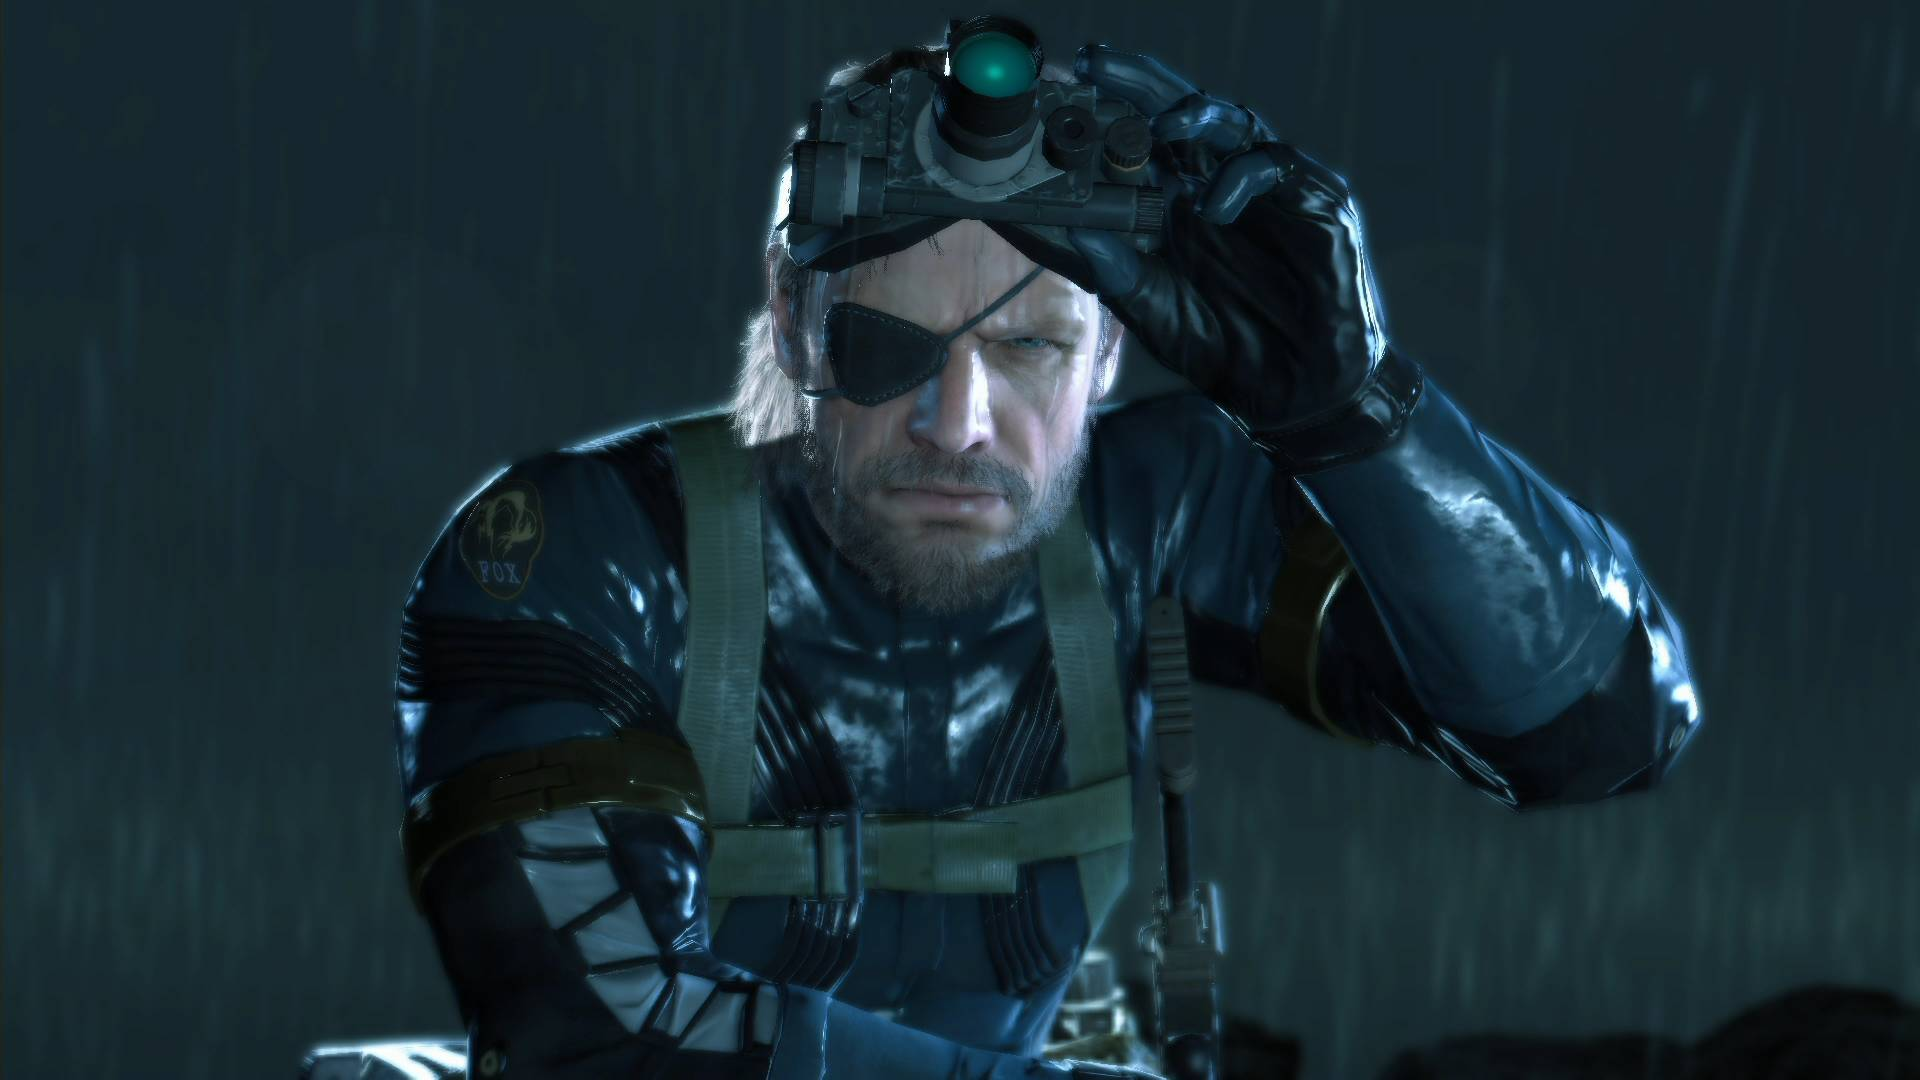 Listen to a Metal Gear Solid radio drama, unearthed from the 1990s